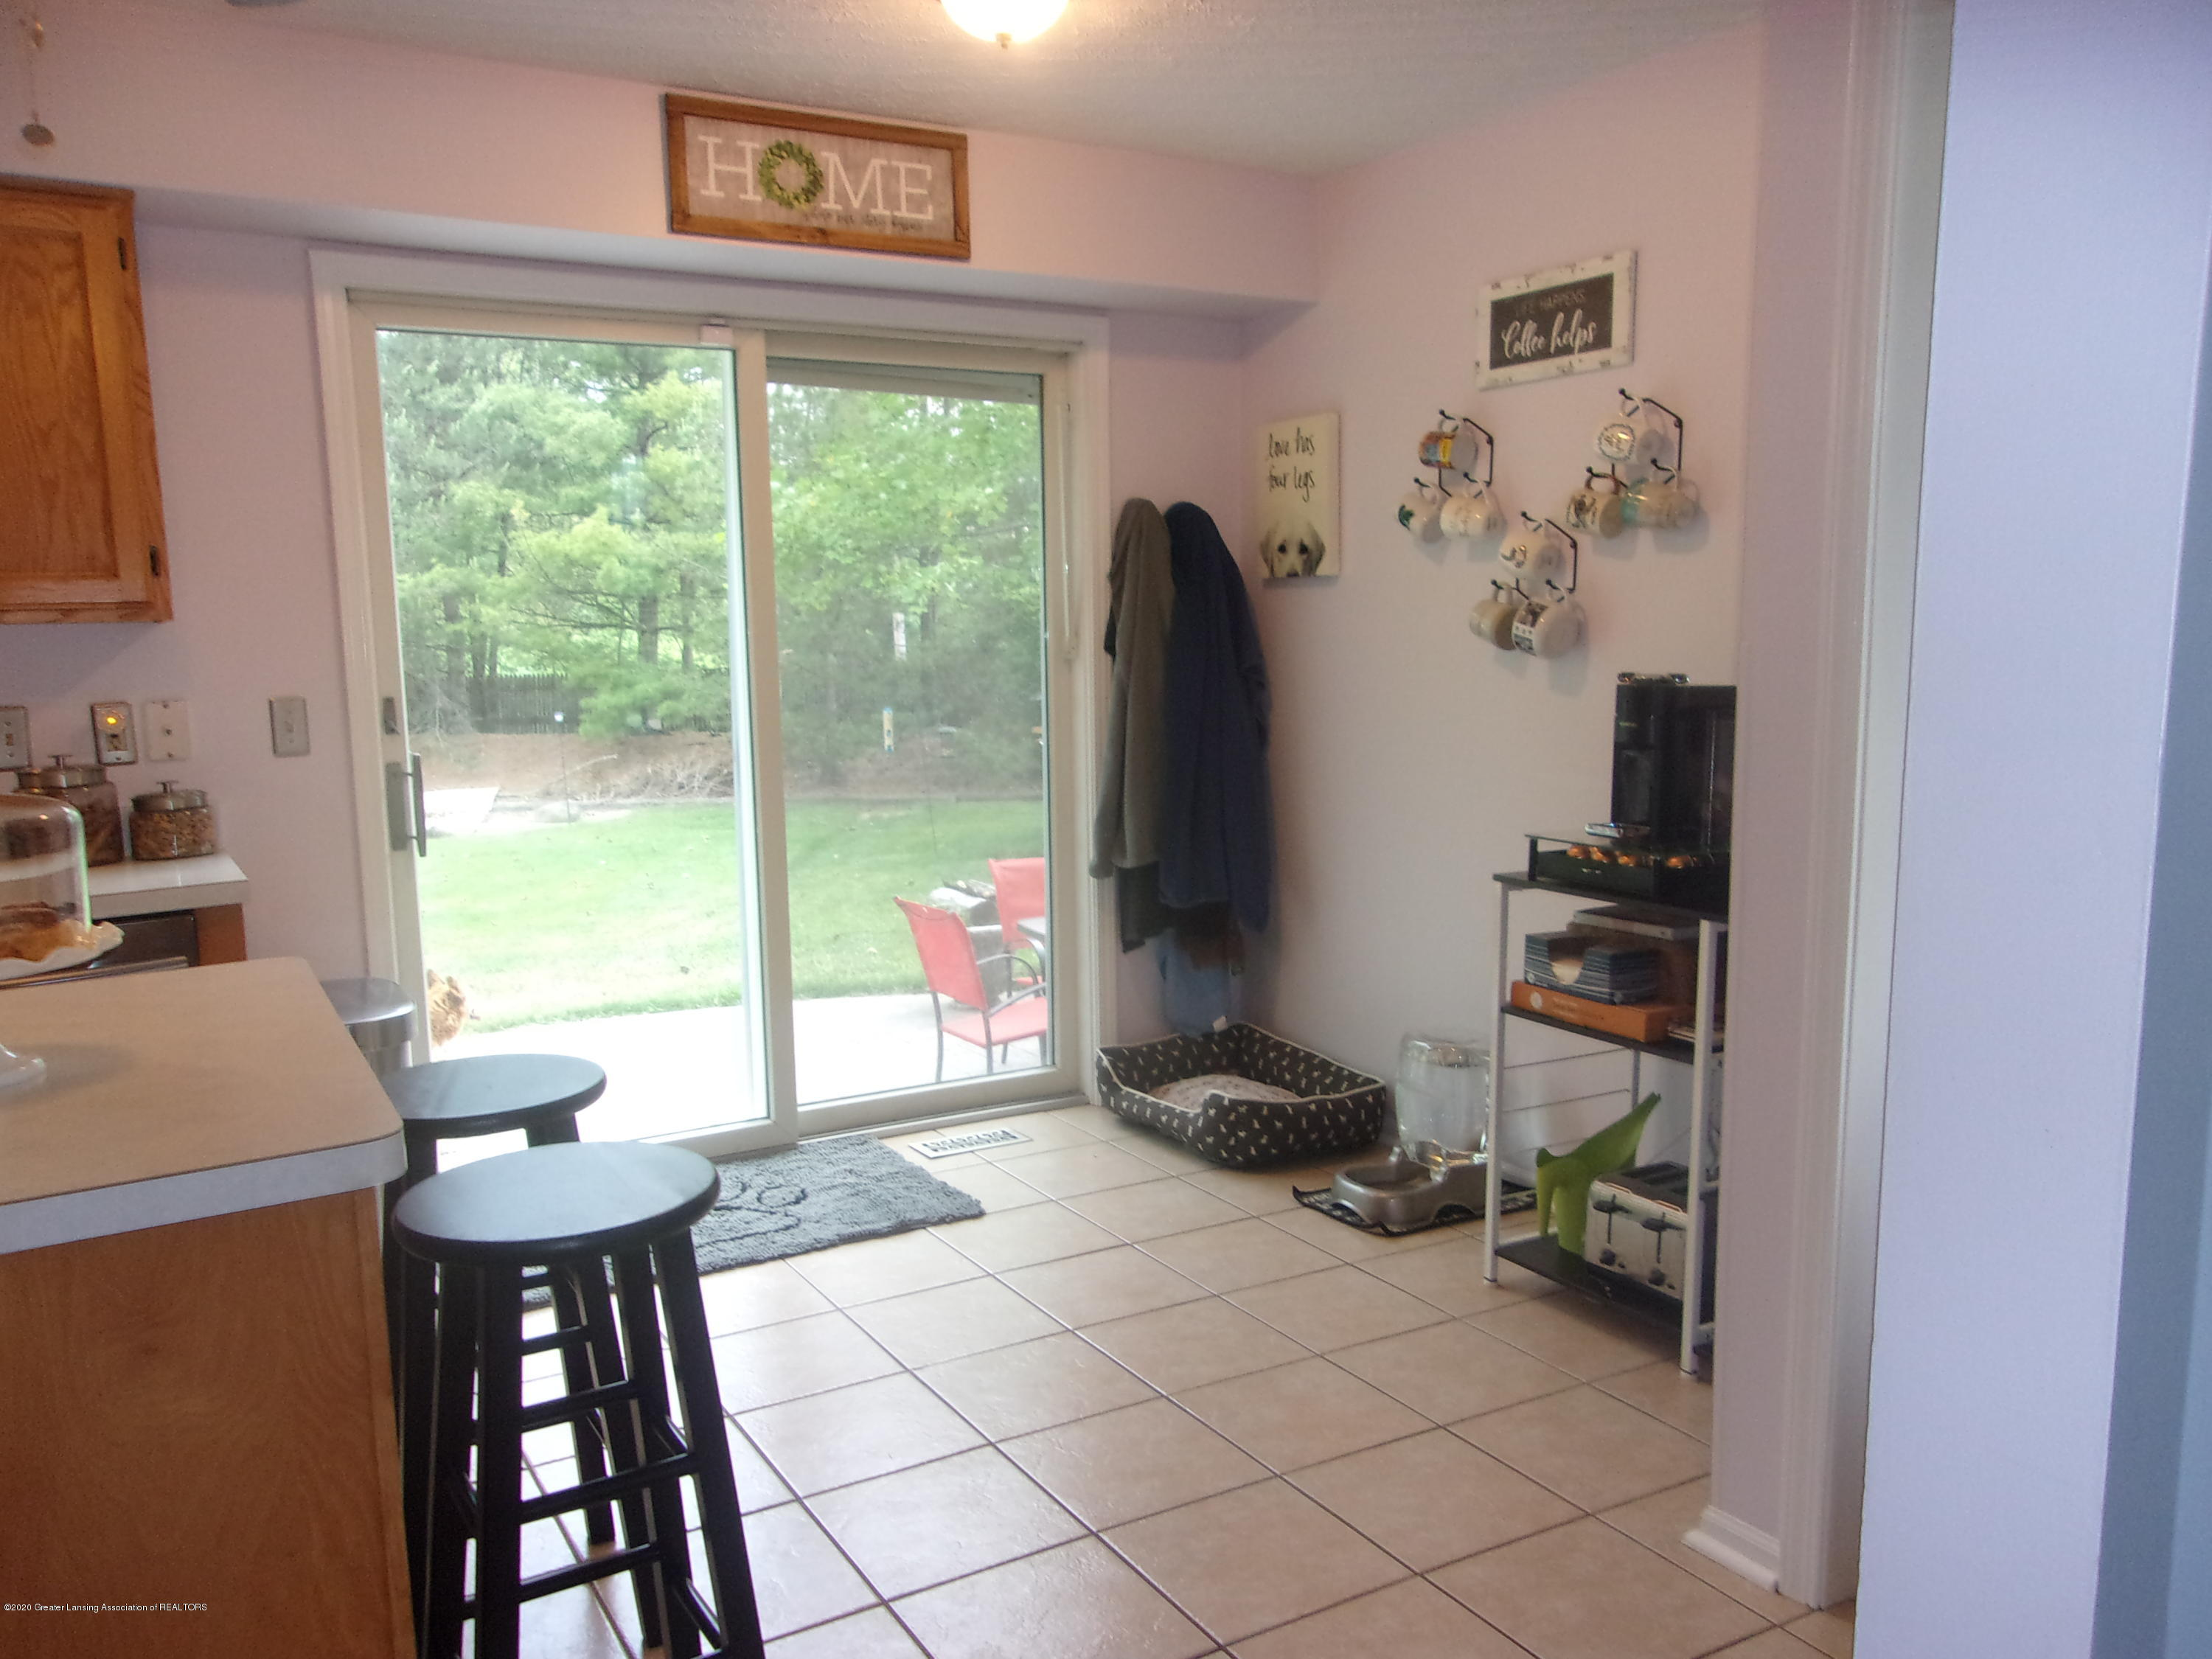 3991 Windy Heights Dr - 100_0989 - 22